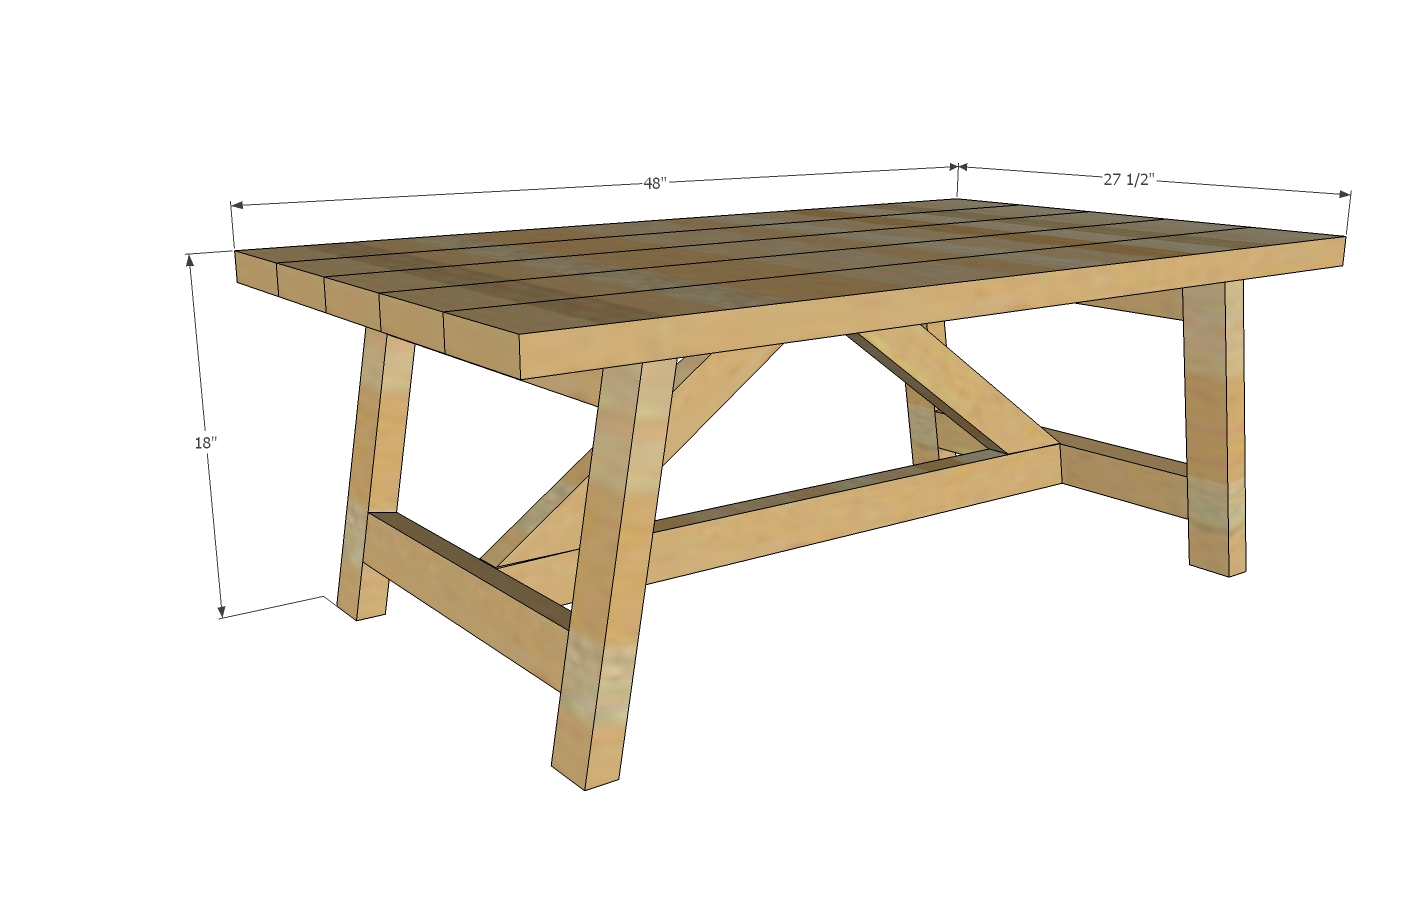 truss coffee table woodworking plans WoodShop Plans : truss coffee table woodworking plans 2 from woodshop-plans.com size 1412 x 912 jpeg 238kB